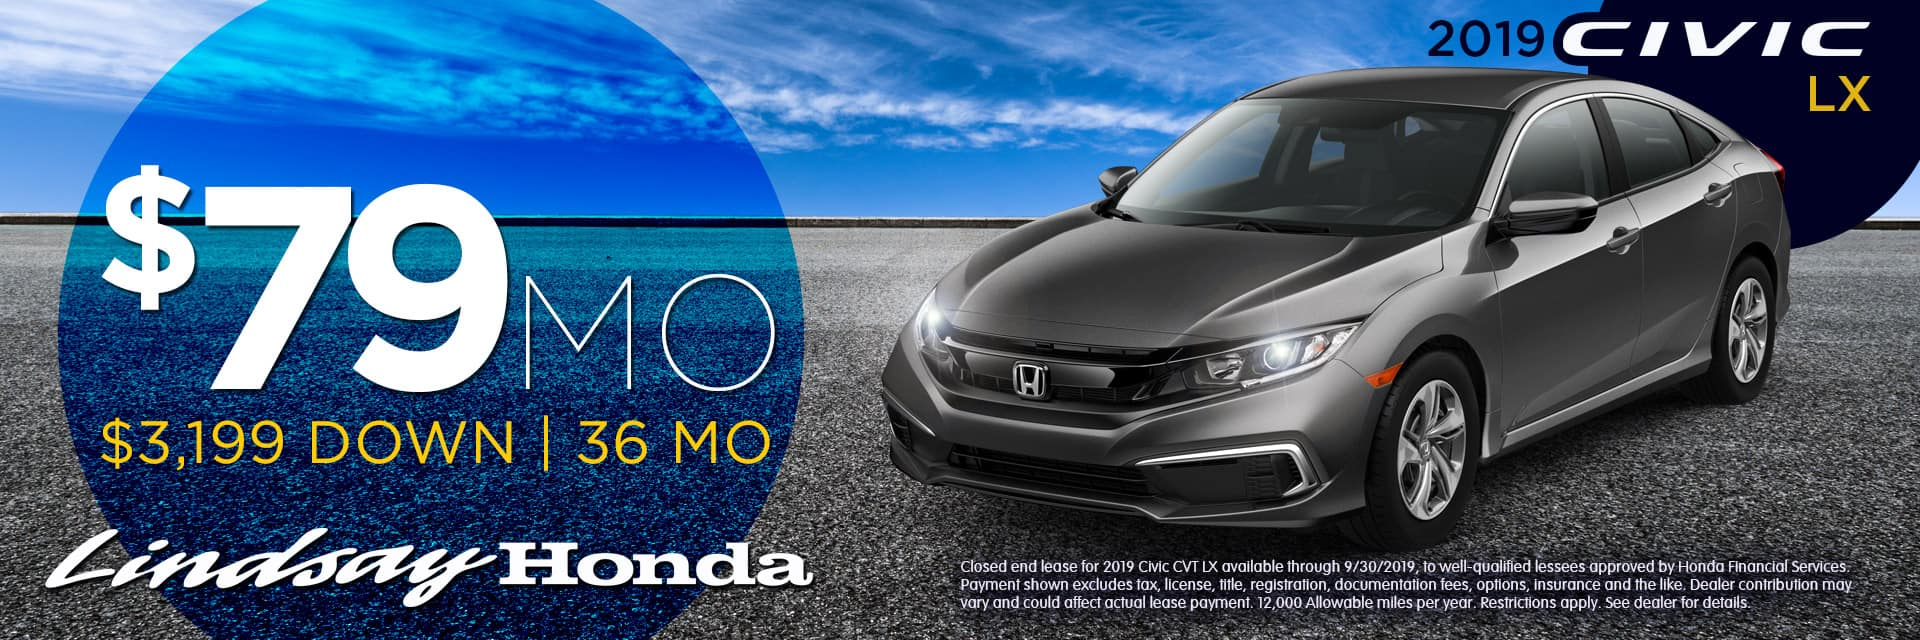 Honda Financial Services Account Management >> Lindsay Honda Honda Dealer In Columbus Oh